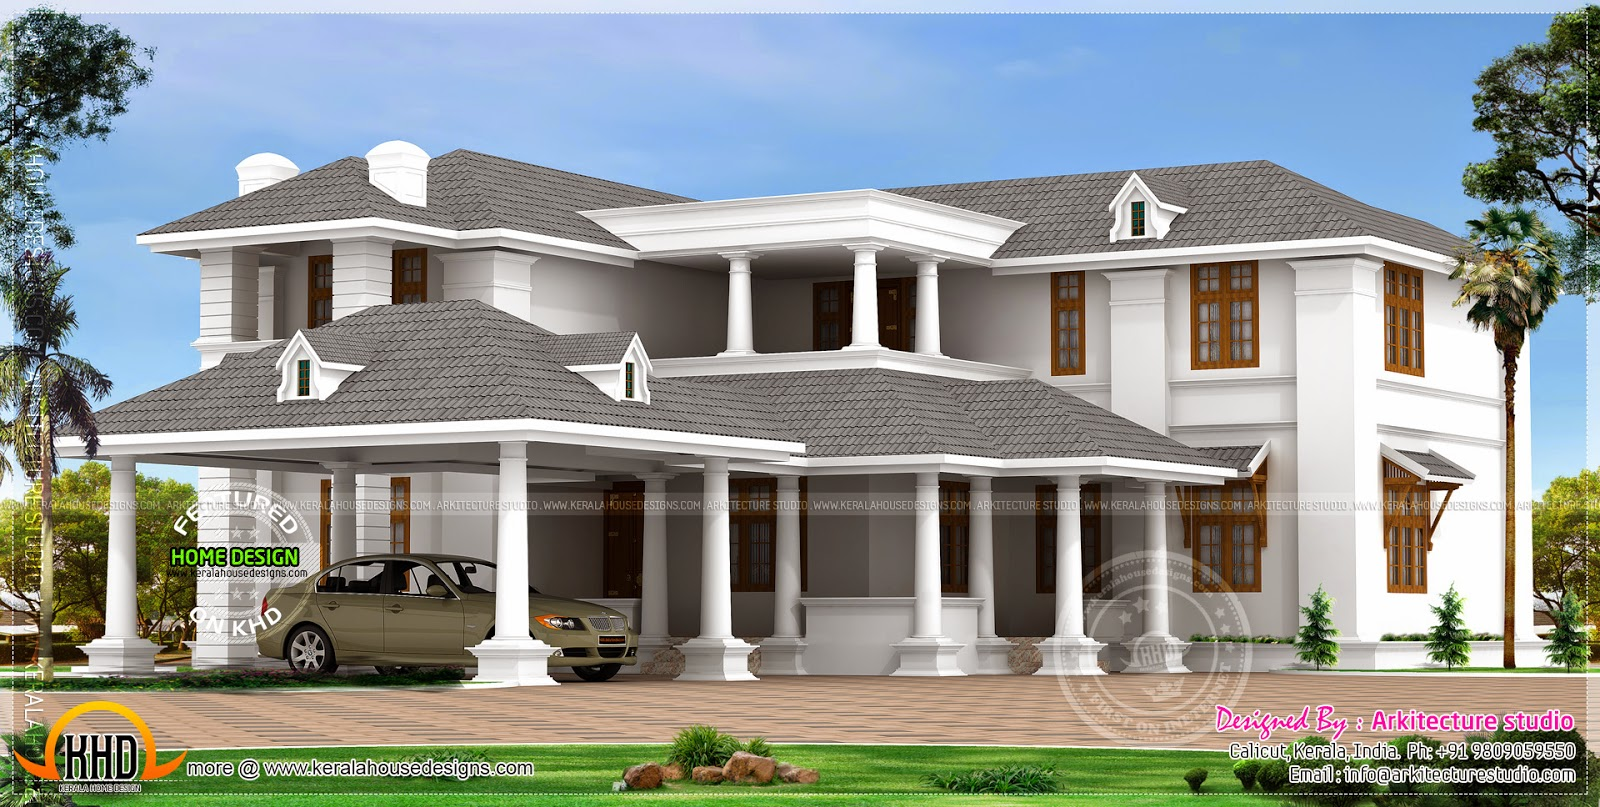 Big Luxury Home Design Kerala Home Design And Floor Plans - Luxury home designs photos